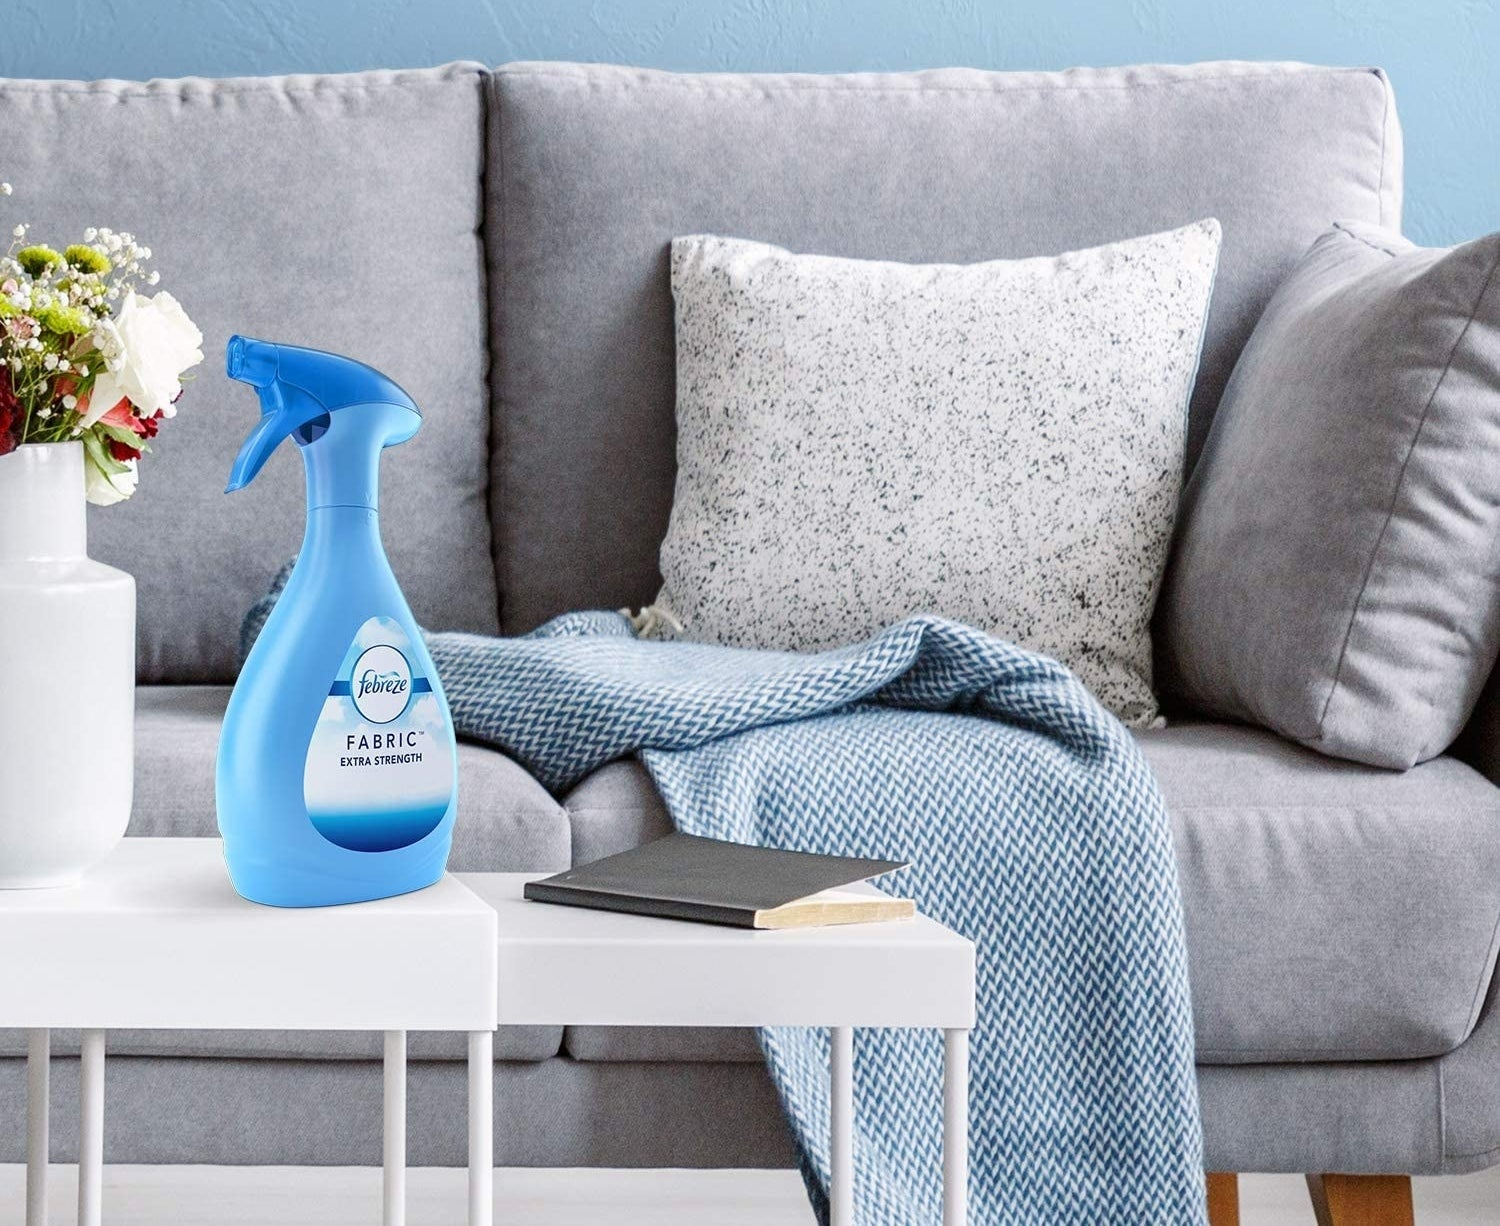 A living room with a bottle of Febreze on a coffee table in front of a couch